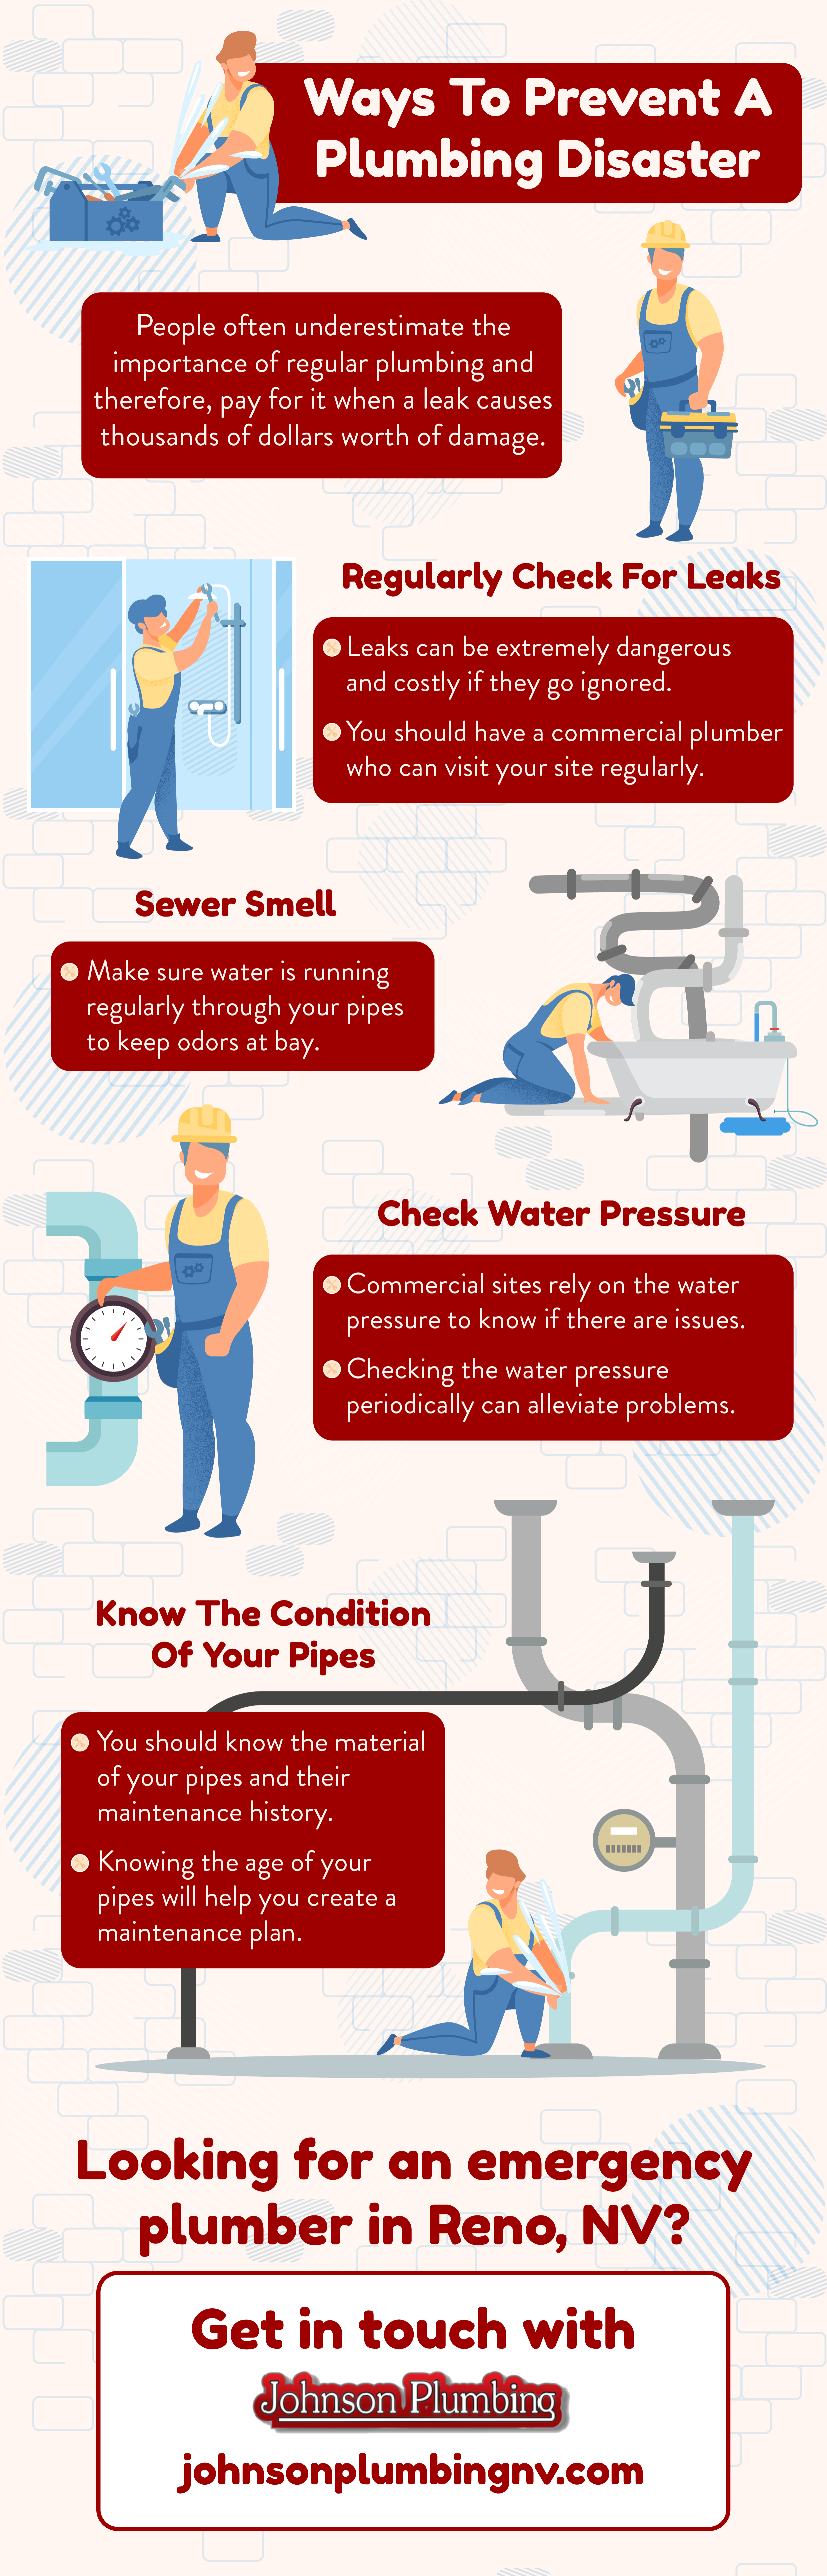 Ways to Prevent A Plumbing Disaster